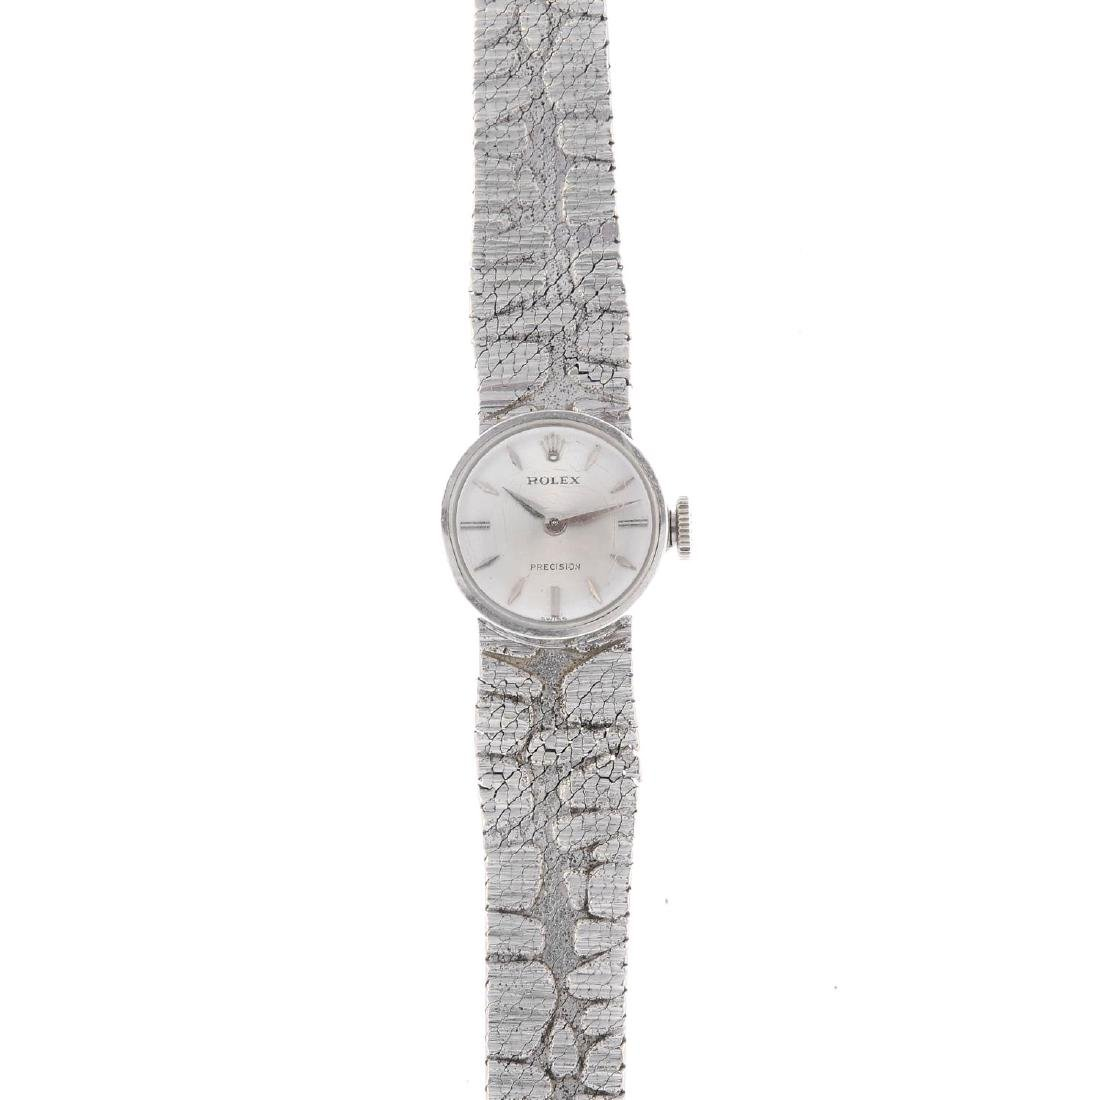 ROLEX - a lady's Precision bracelet watch. 9ct white